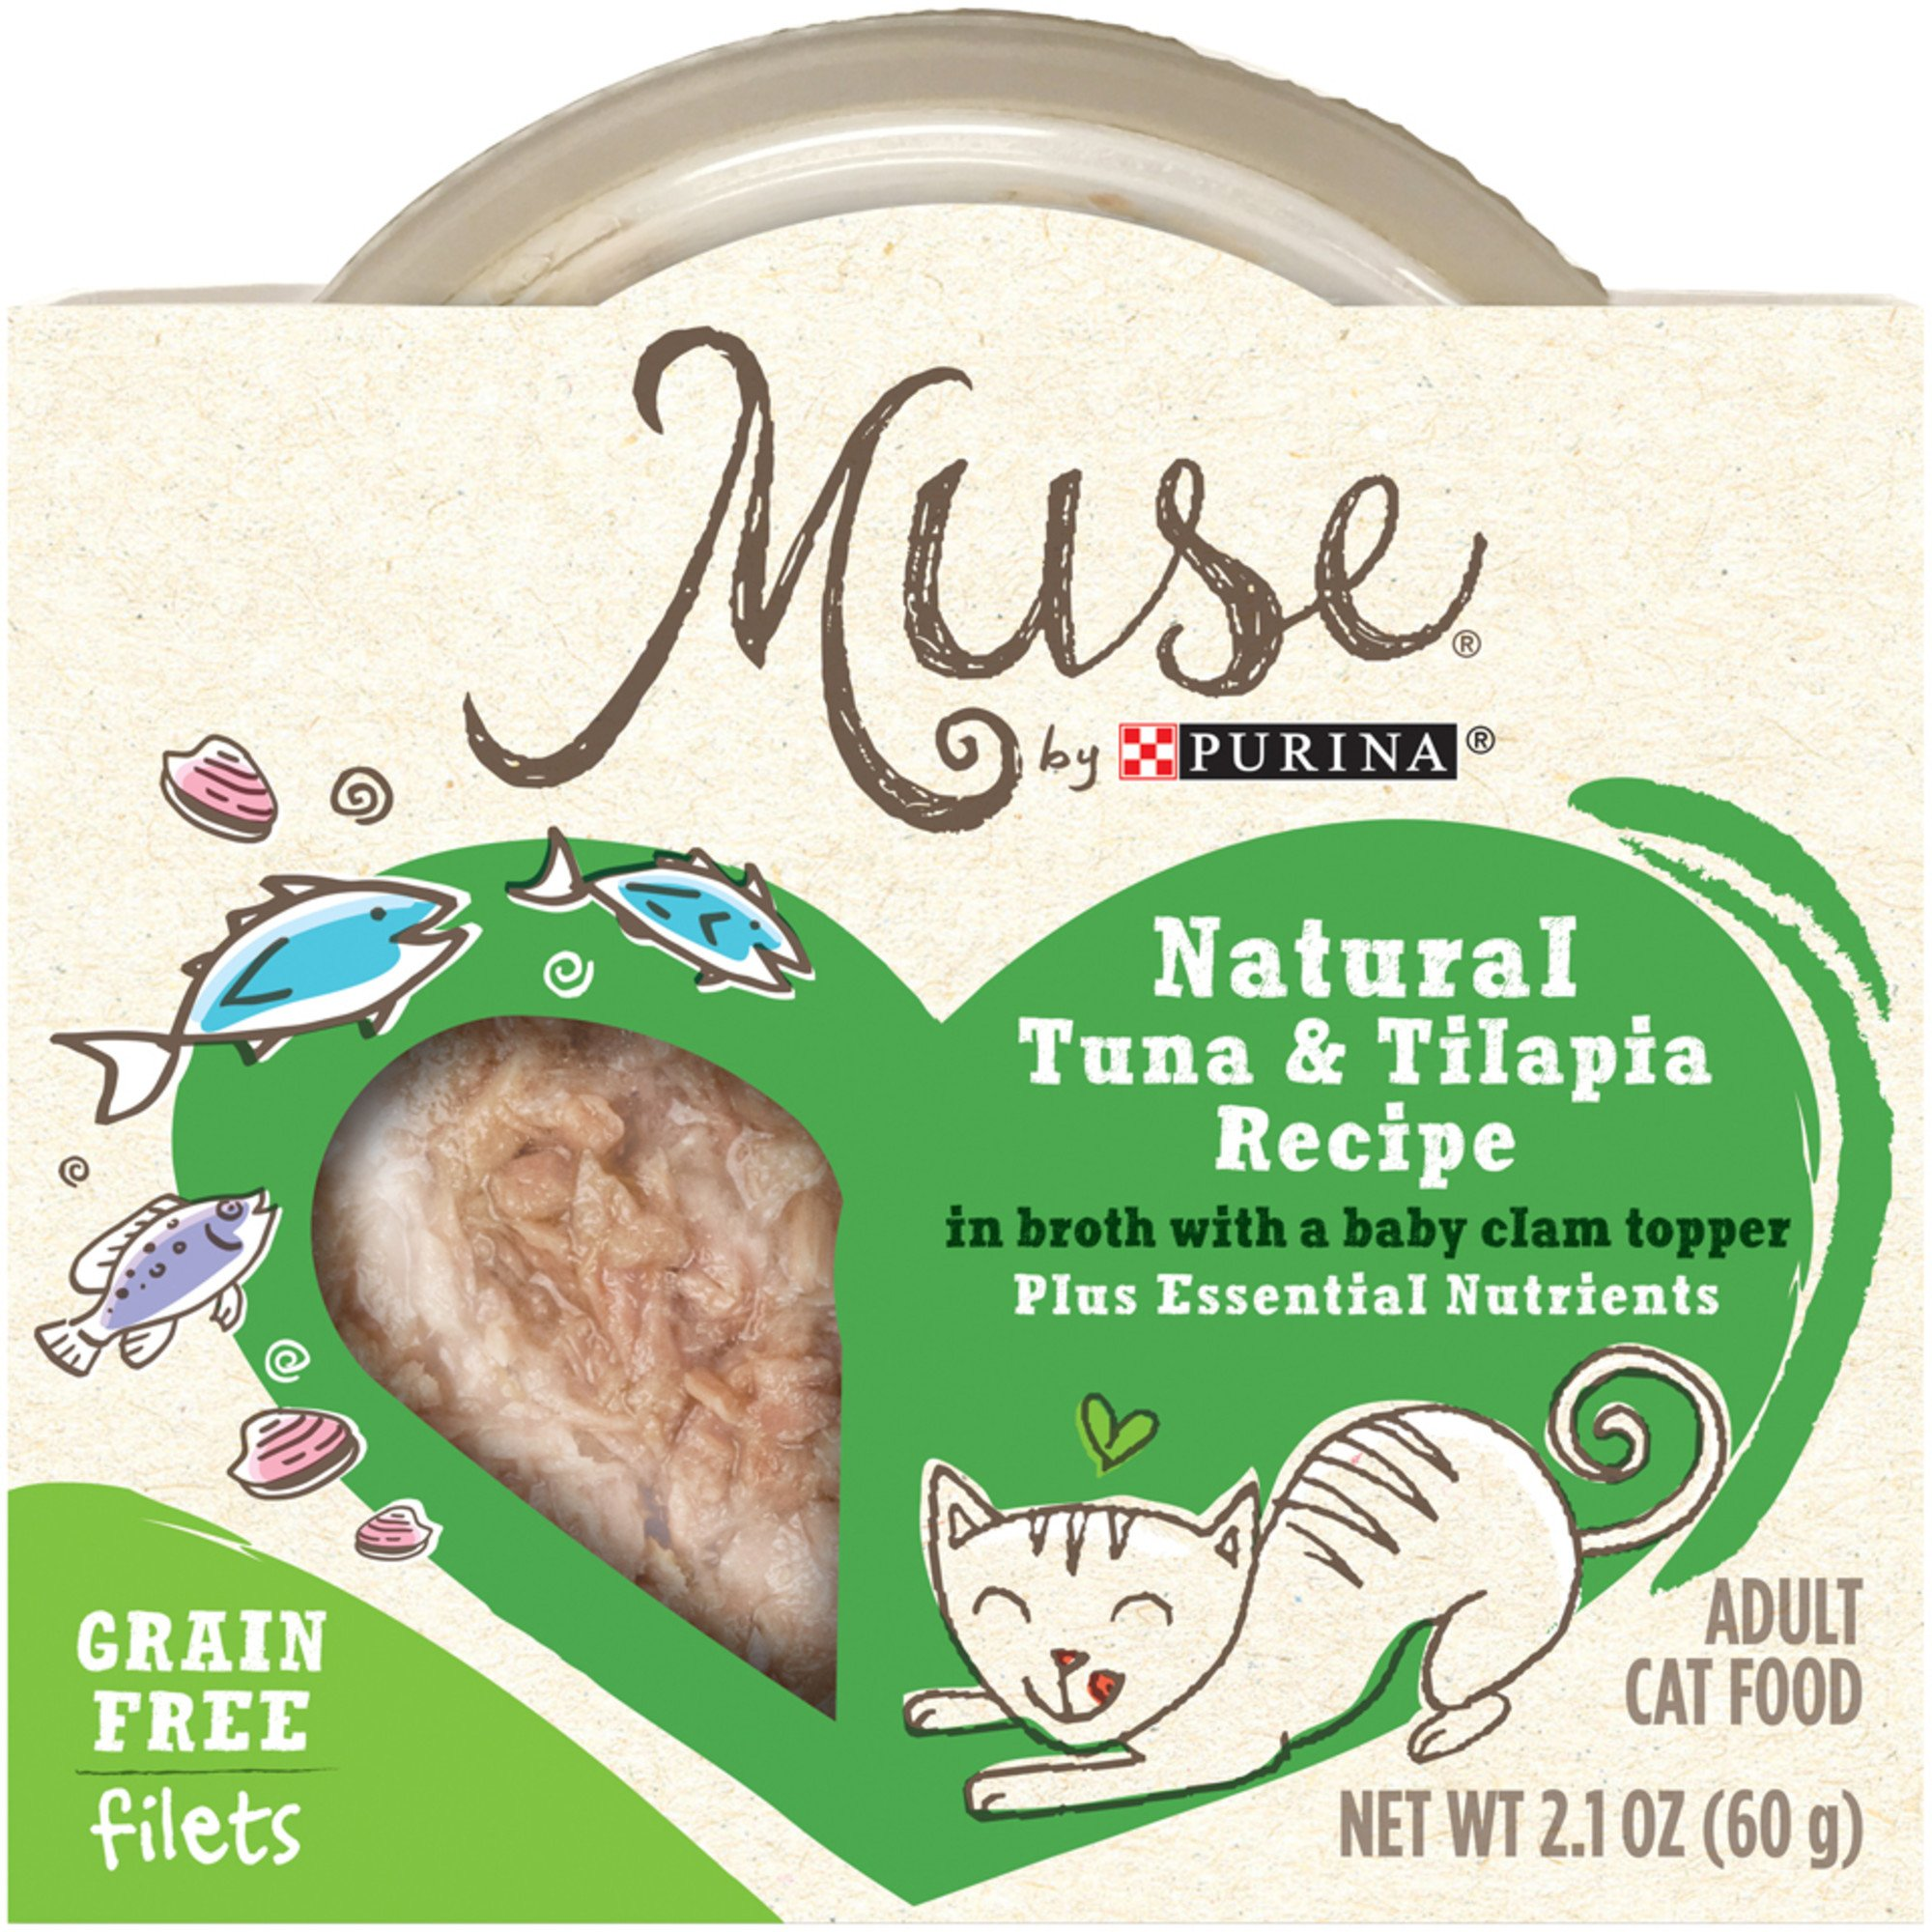 Muse by Purina Natural Tuna & Tilapia Recipe In Broth with a Baby Clam Topper Cat Food